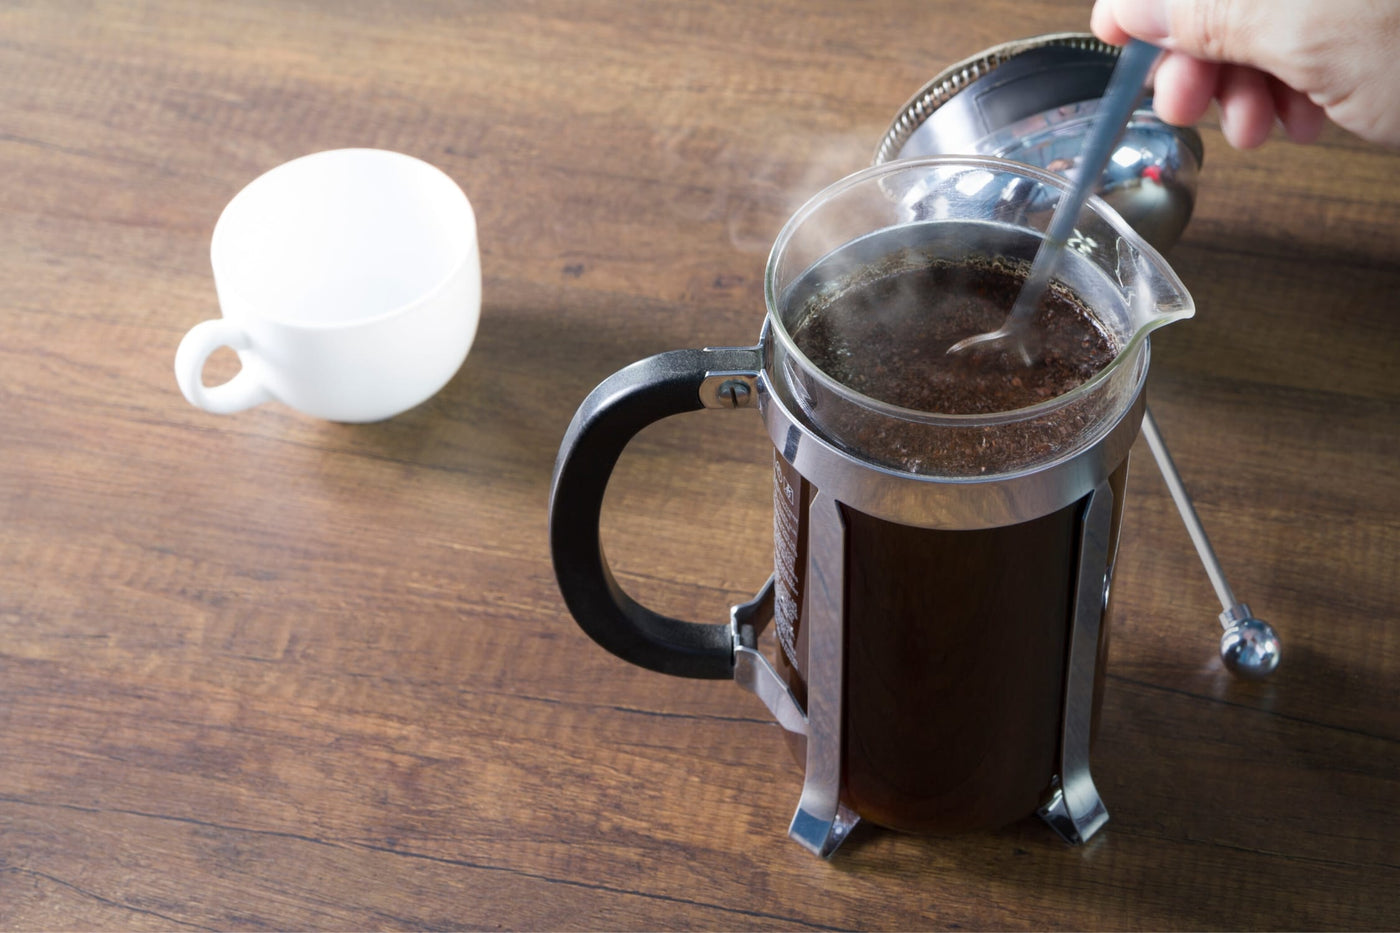 Learn how to brew coffee using a french press